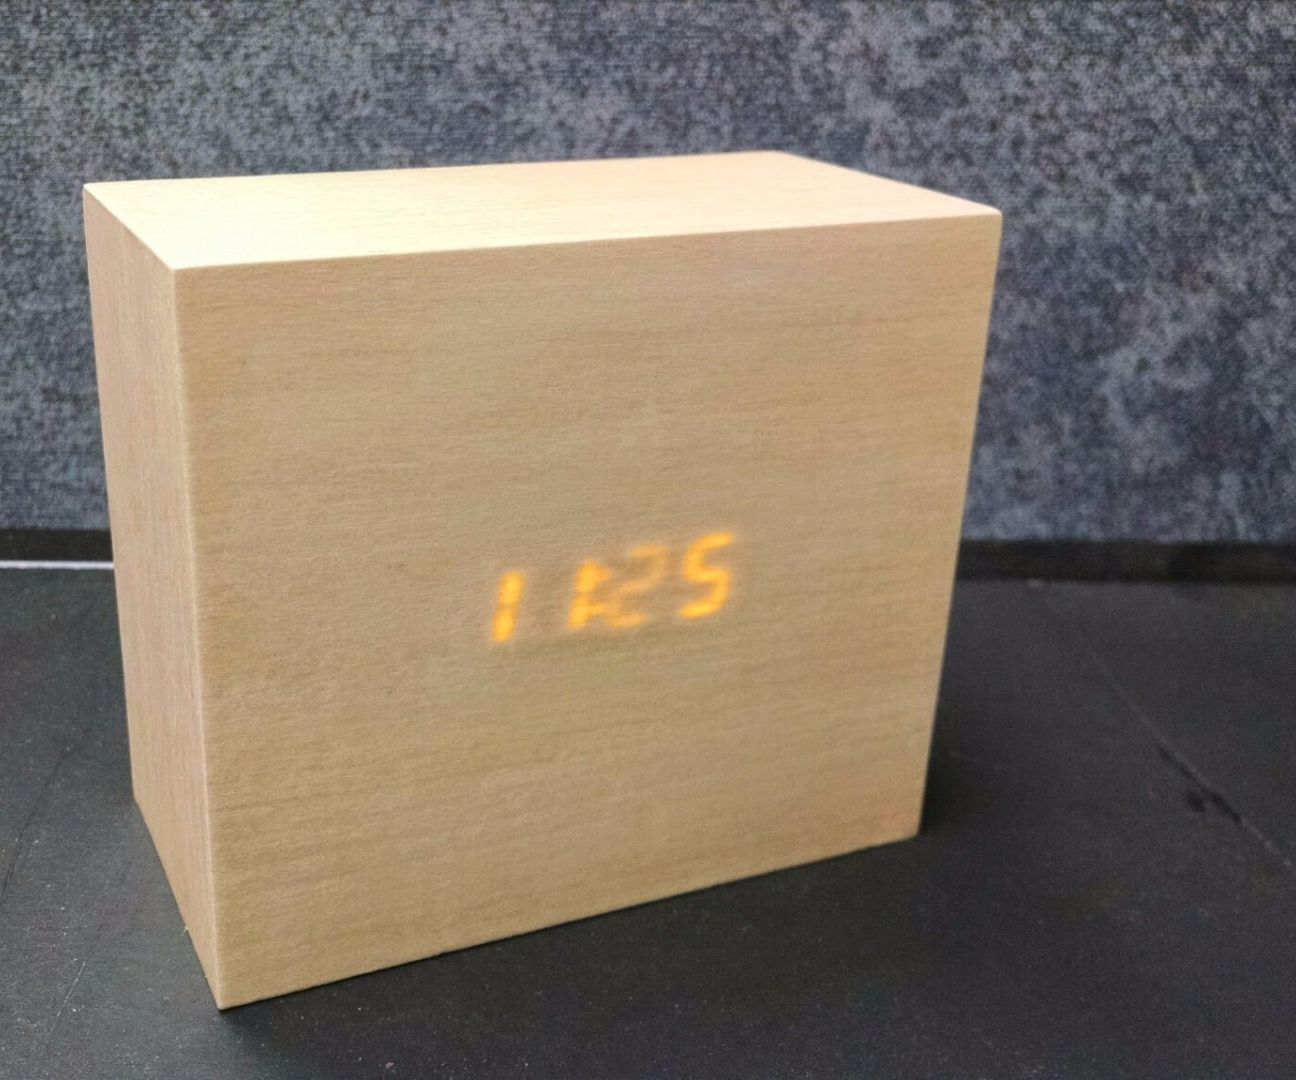 In this project I took an old DIY electronic clock kit a4f3e72e3a